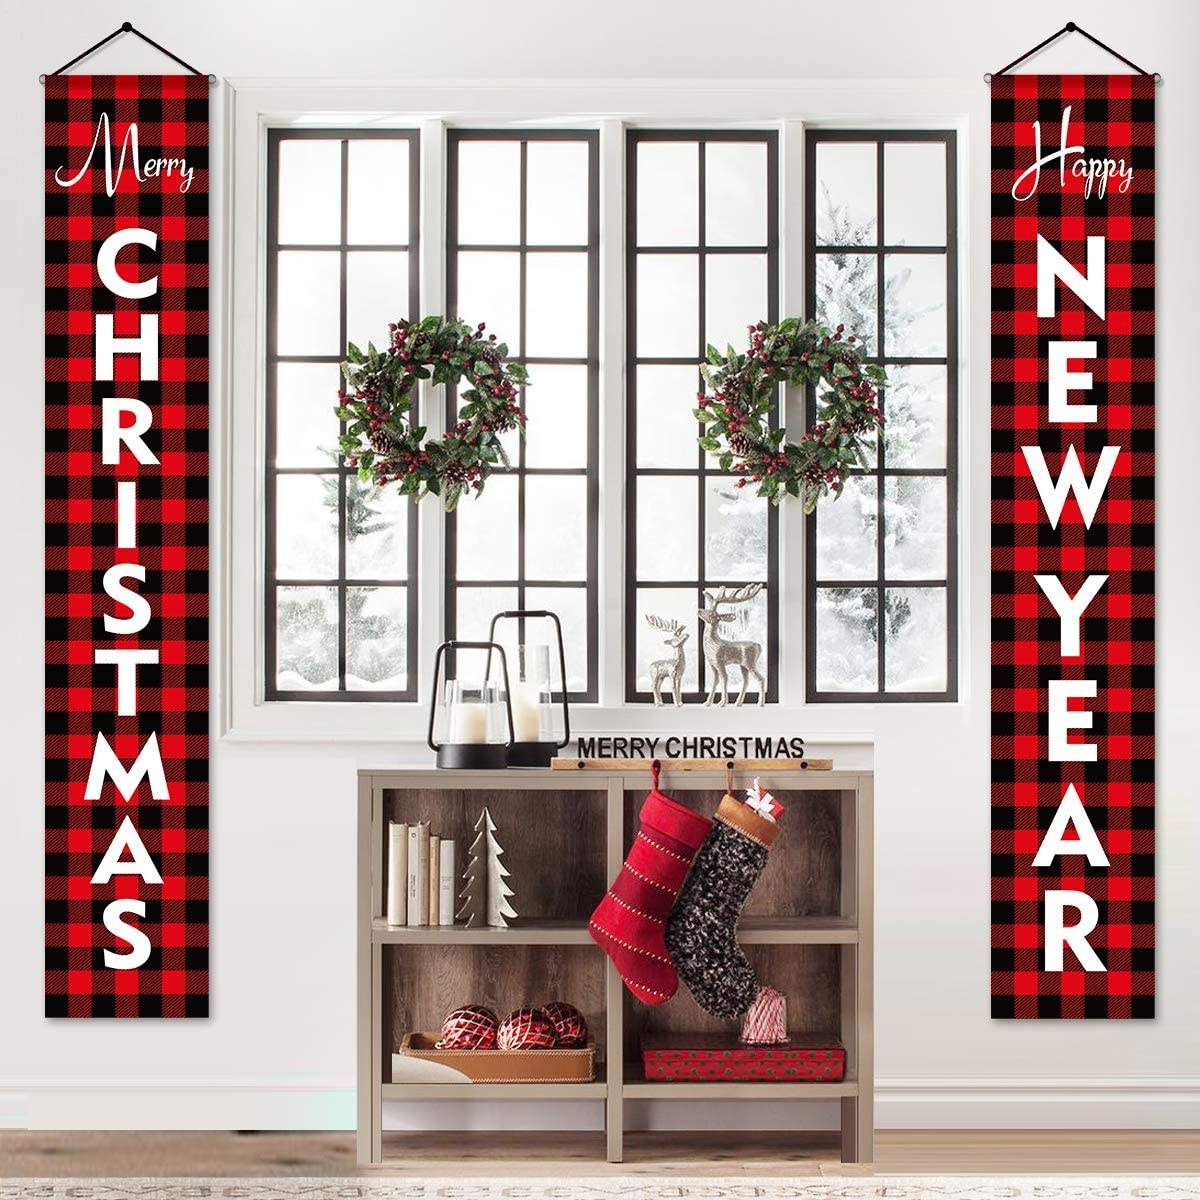 BUON NATALE FELICE ANNO NUOVO Rosso <span class=keywords><strong>Buffalo</strong></span> Controllare Plaid Portico Segni Moderna Agriturismo Decor